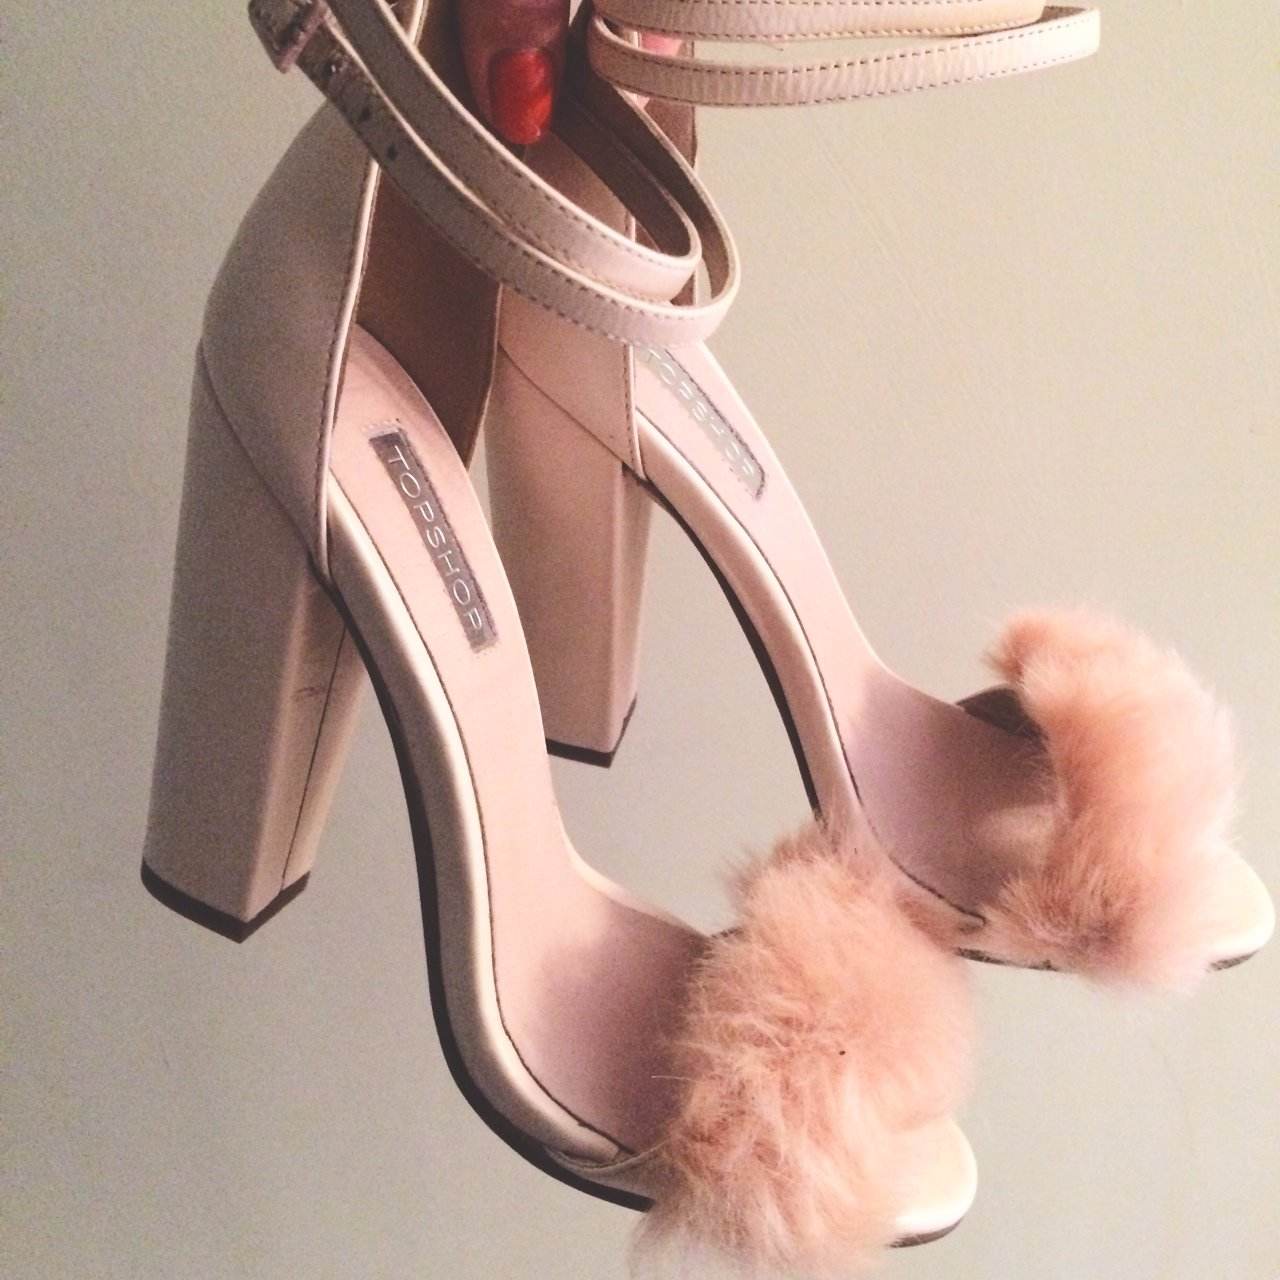 0512f4854ec54 Topshop Pink Fluffy Shoes. Size 4. Brand new- unworn and in - Depop